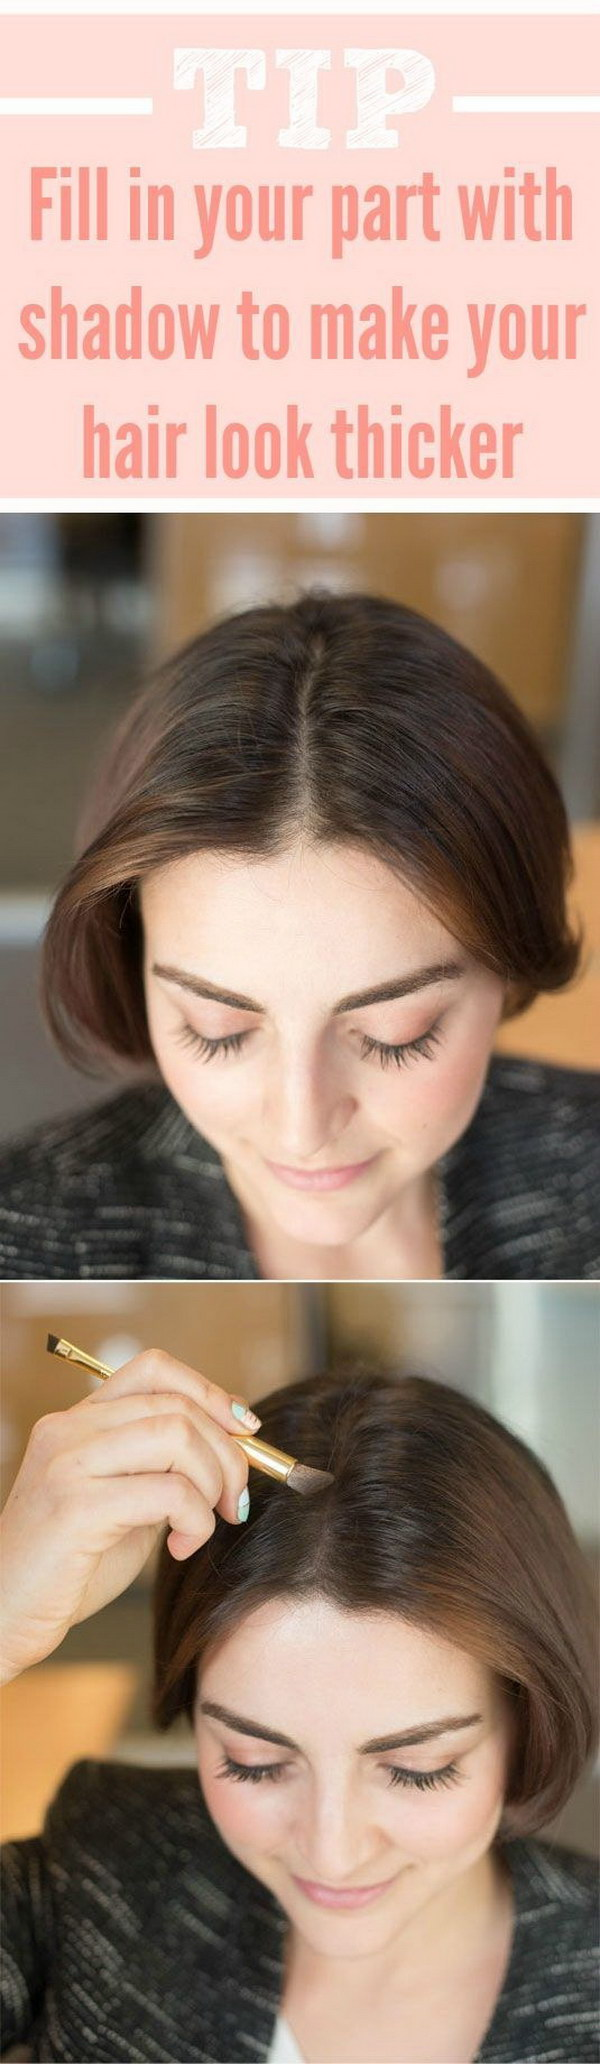 Making Your Hair Appear Thicker with Eyeshadow.